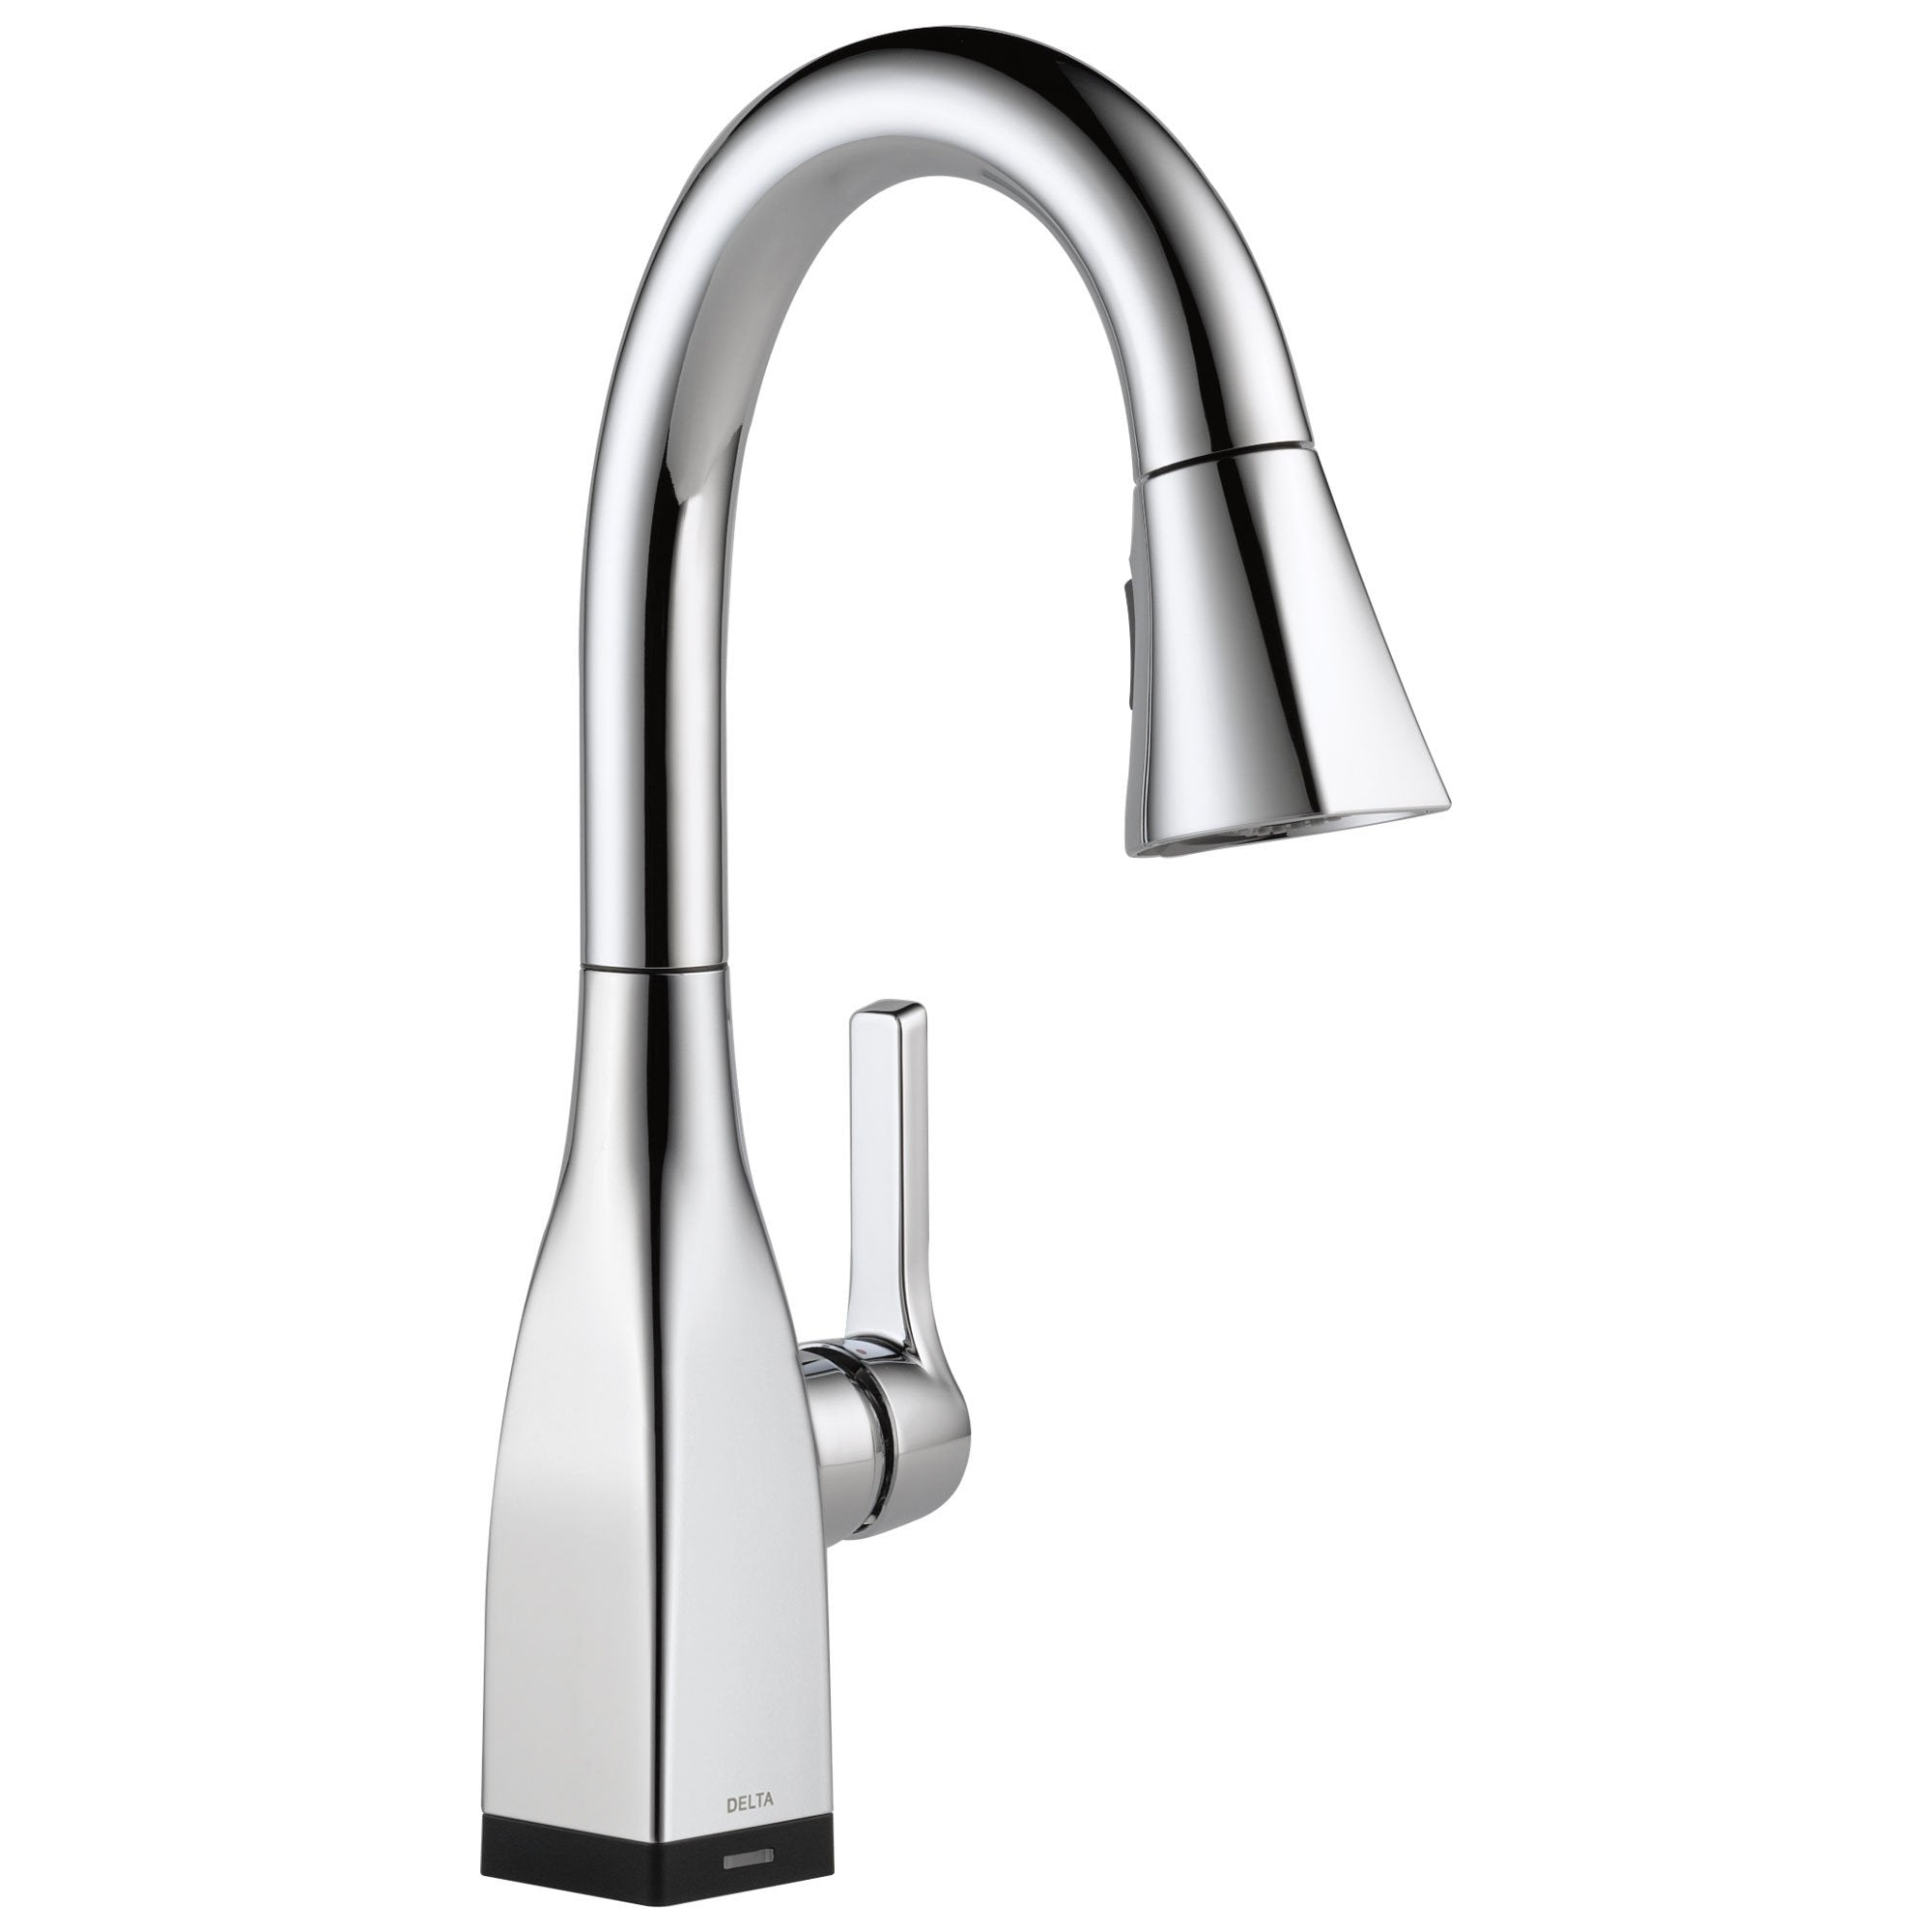 Delta Mateo Collection Chrome Finish Modern Single Handle Pull-Down Electronic Bar / Prep Sink Faucet with Touch2O Technology 732803